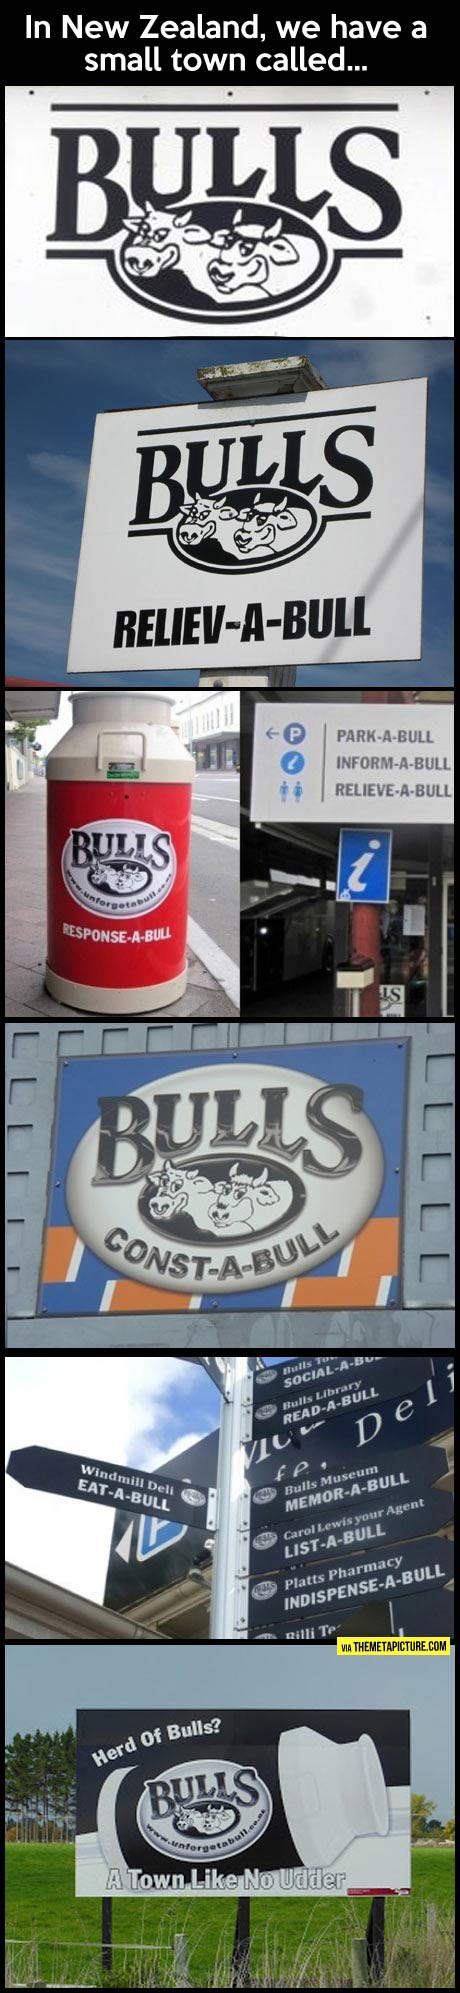 The puns are terr-a-bull…